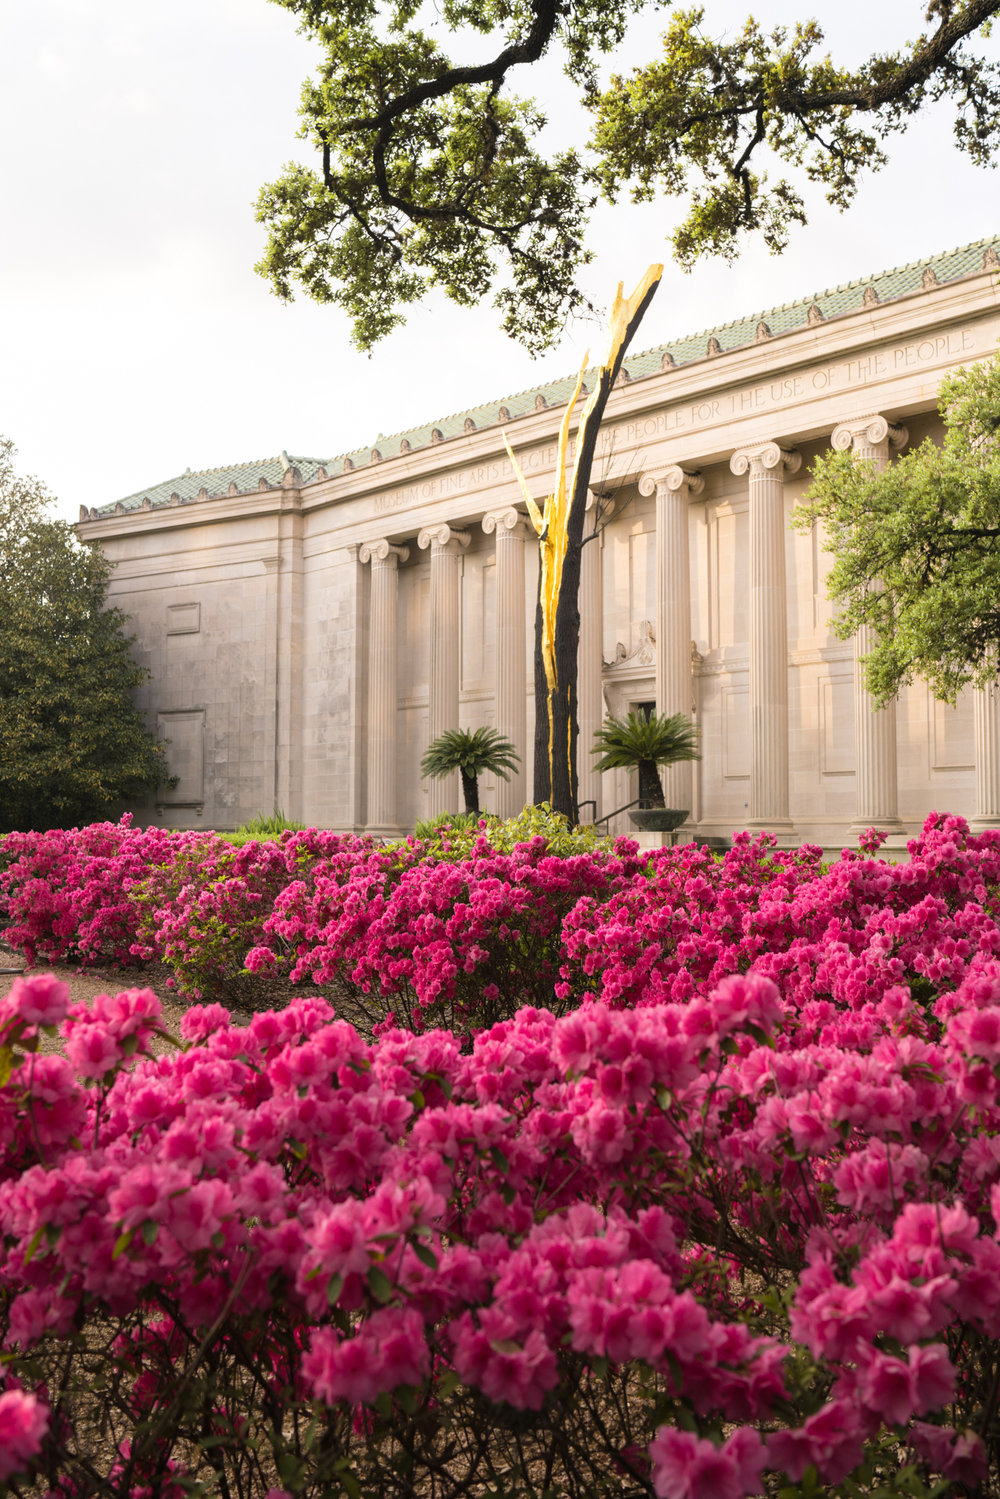 Azalea blooms in front of the Museum of Fine Arts Houston